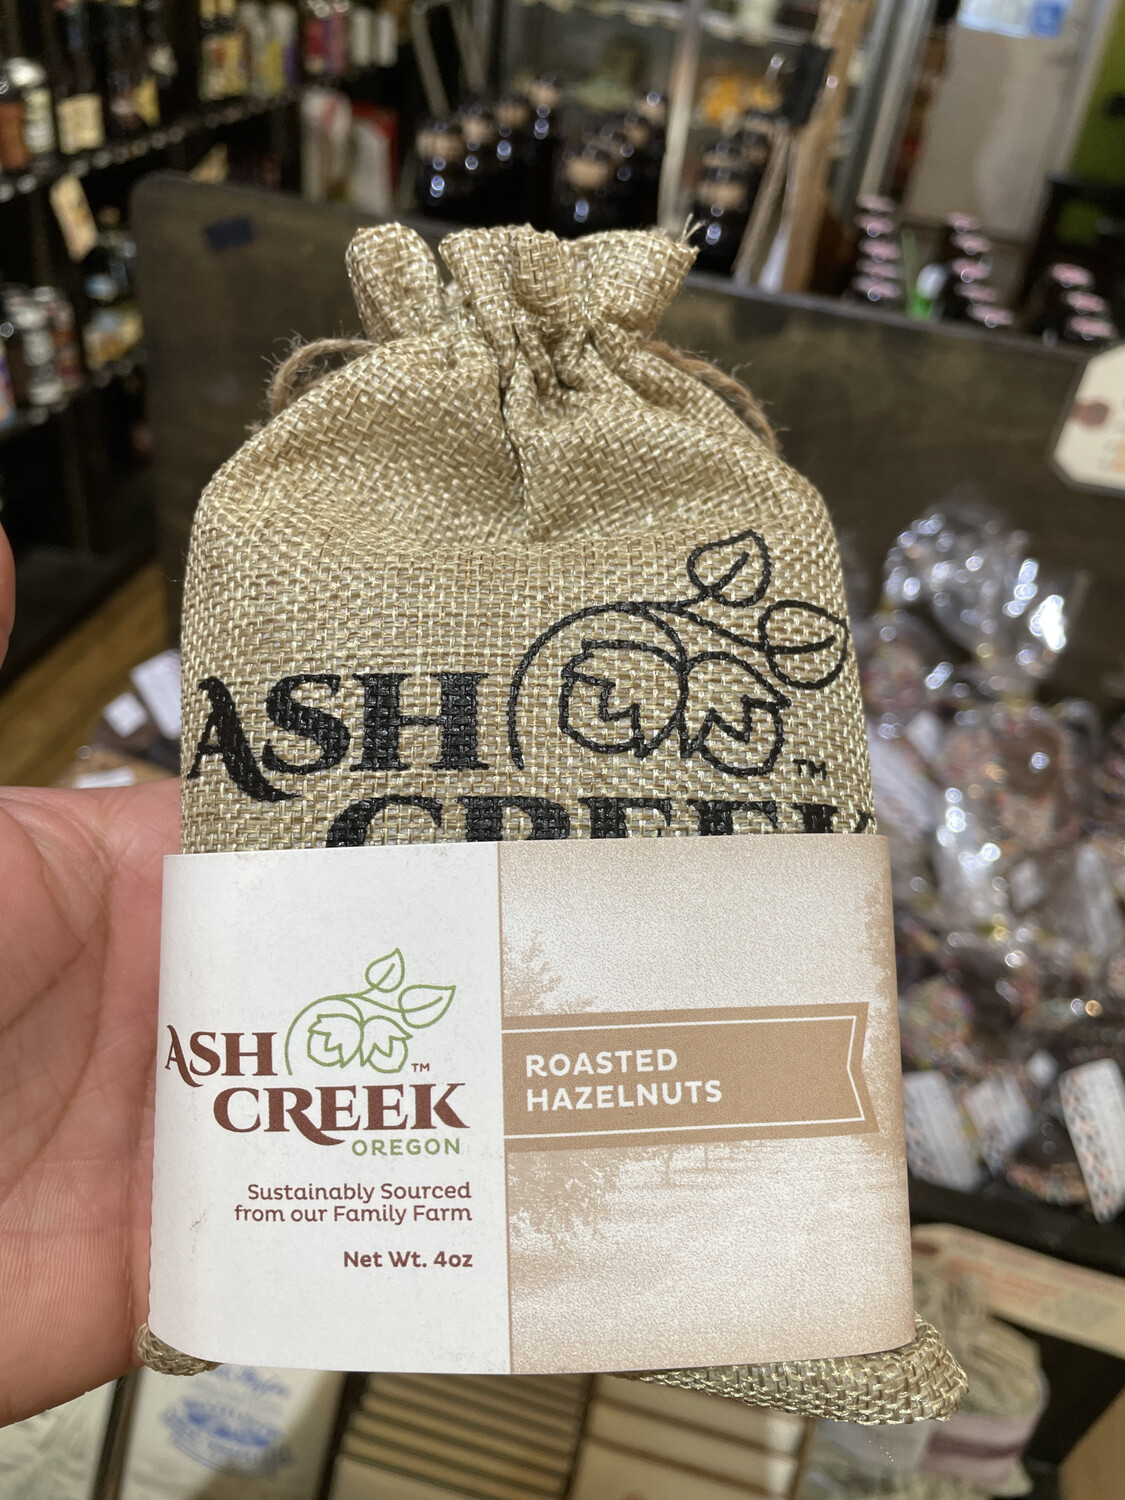 ASH CREEK roasted hazelnuts